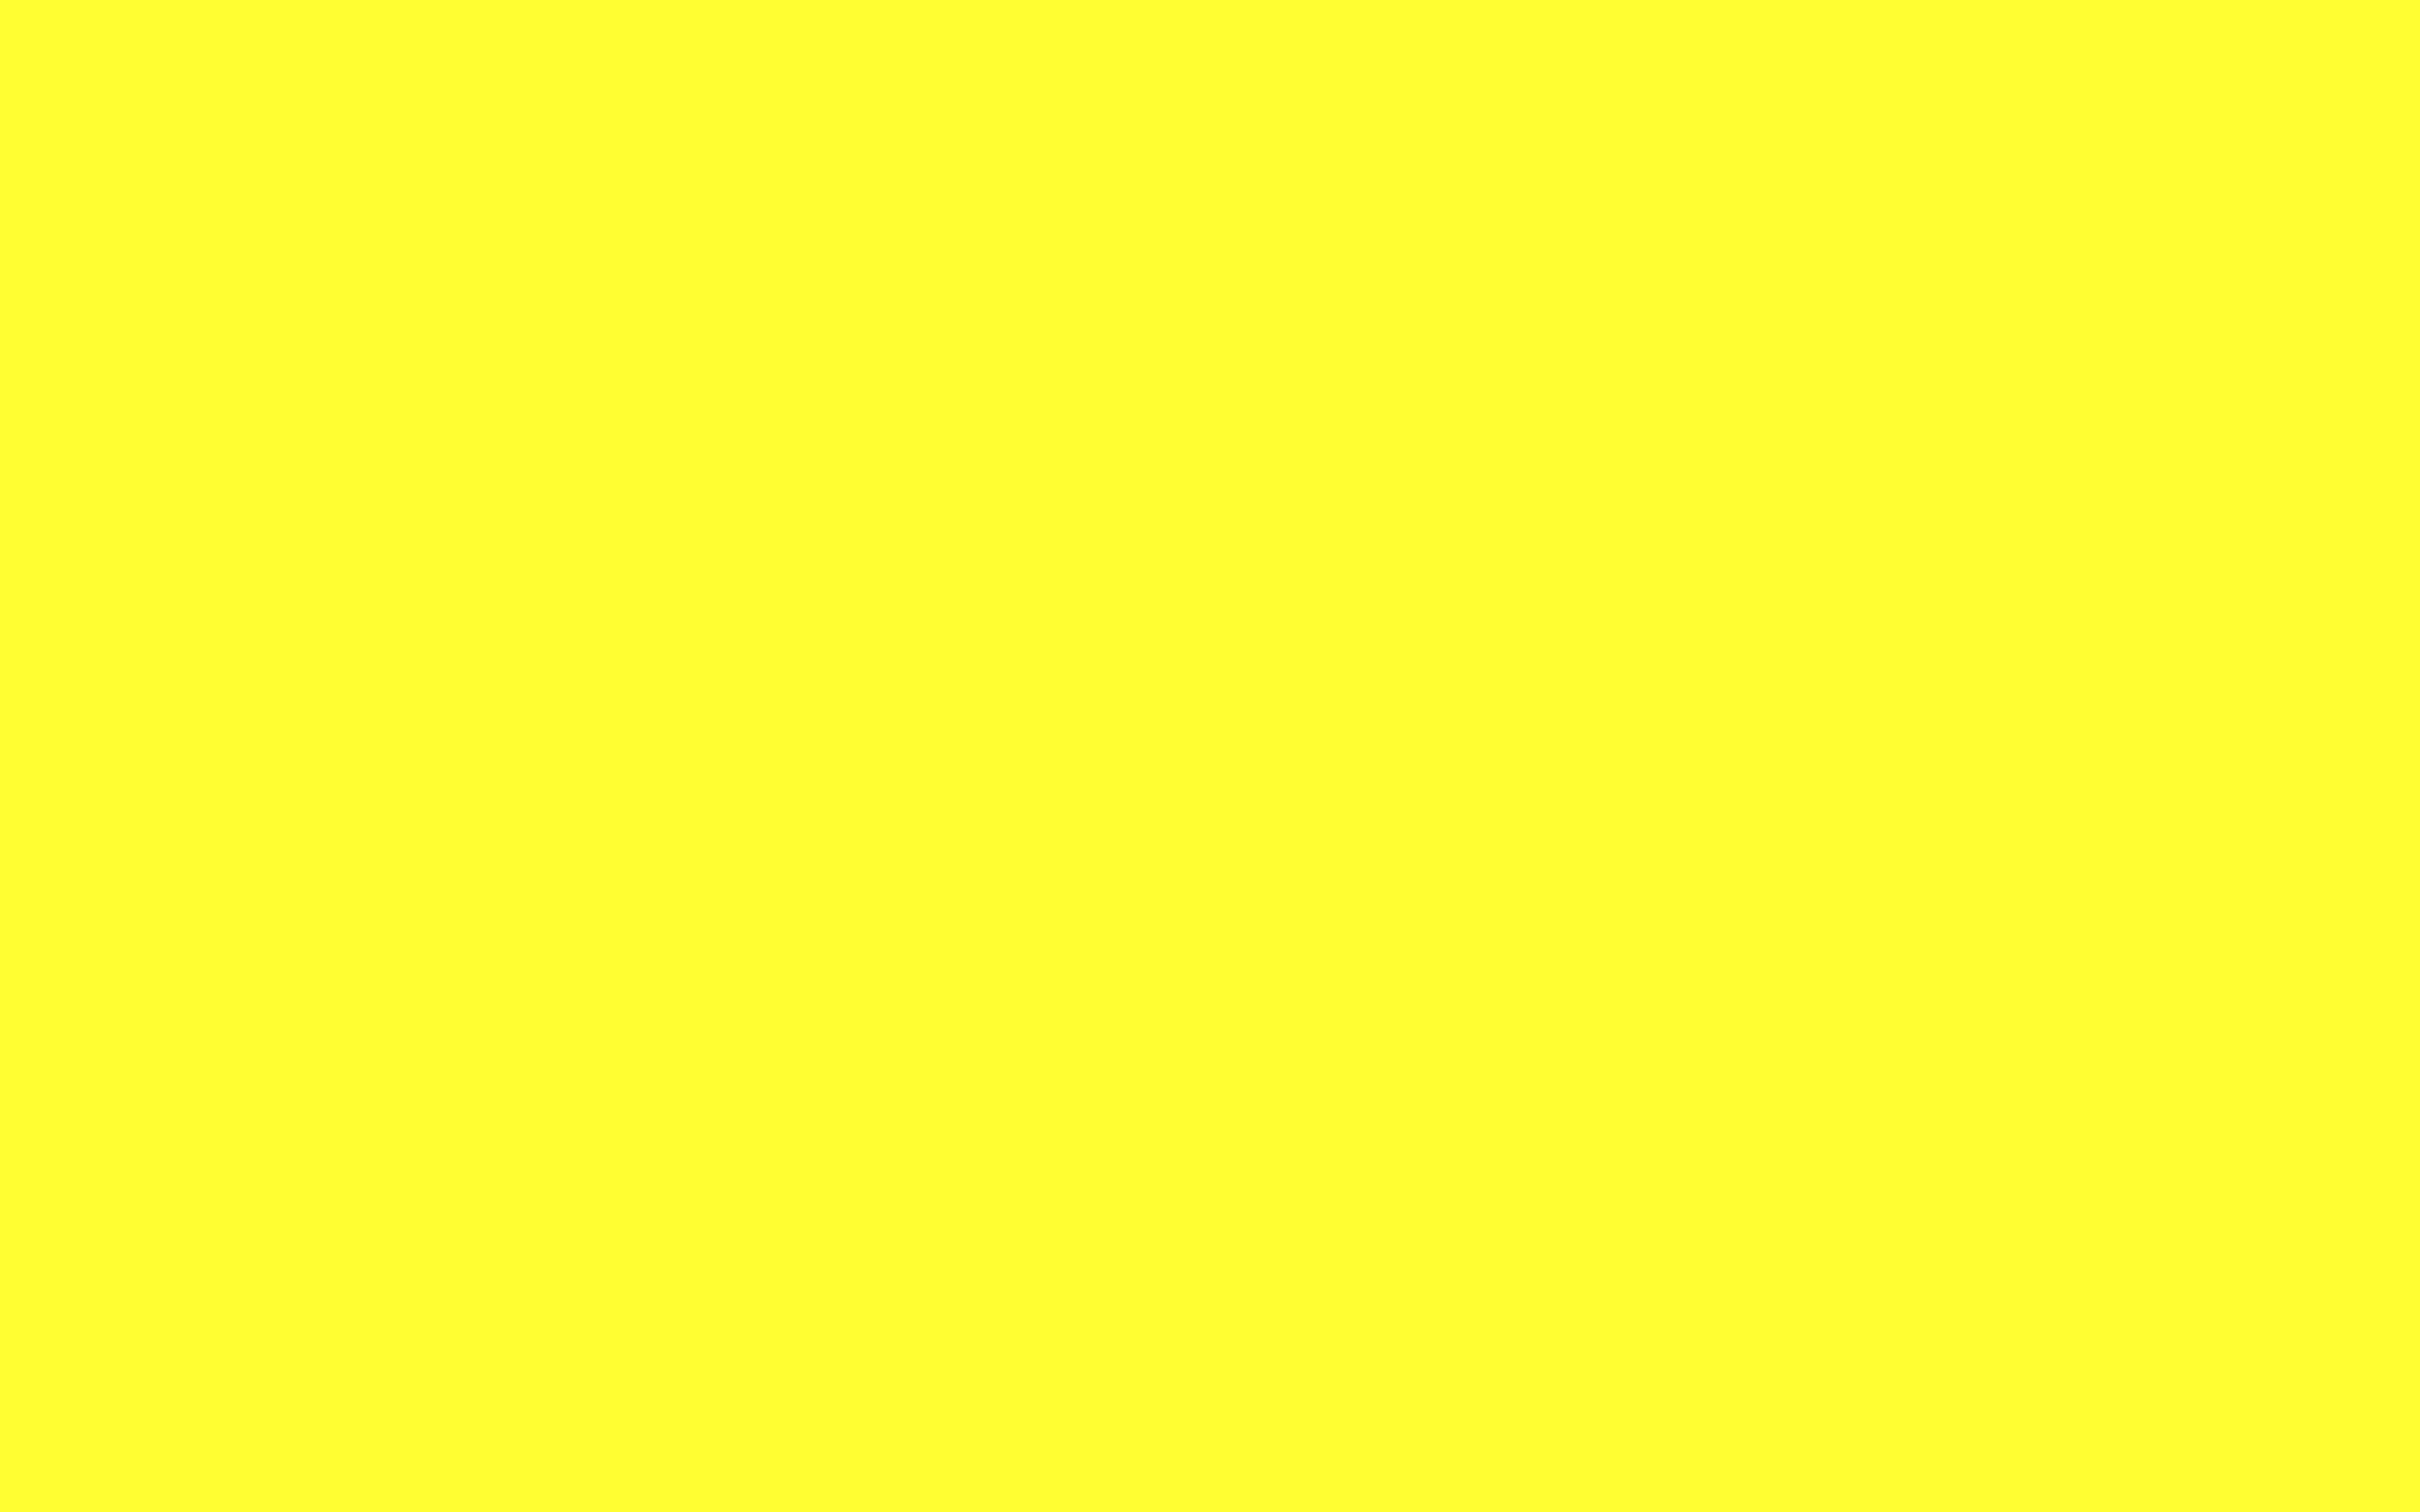 2560x1600 Yellow RYB Solid Color Background